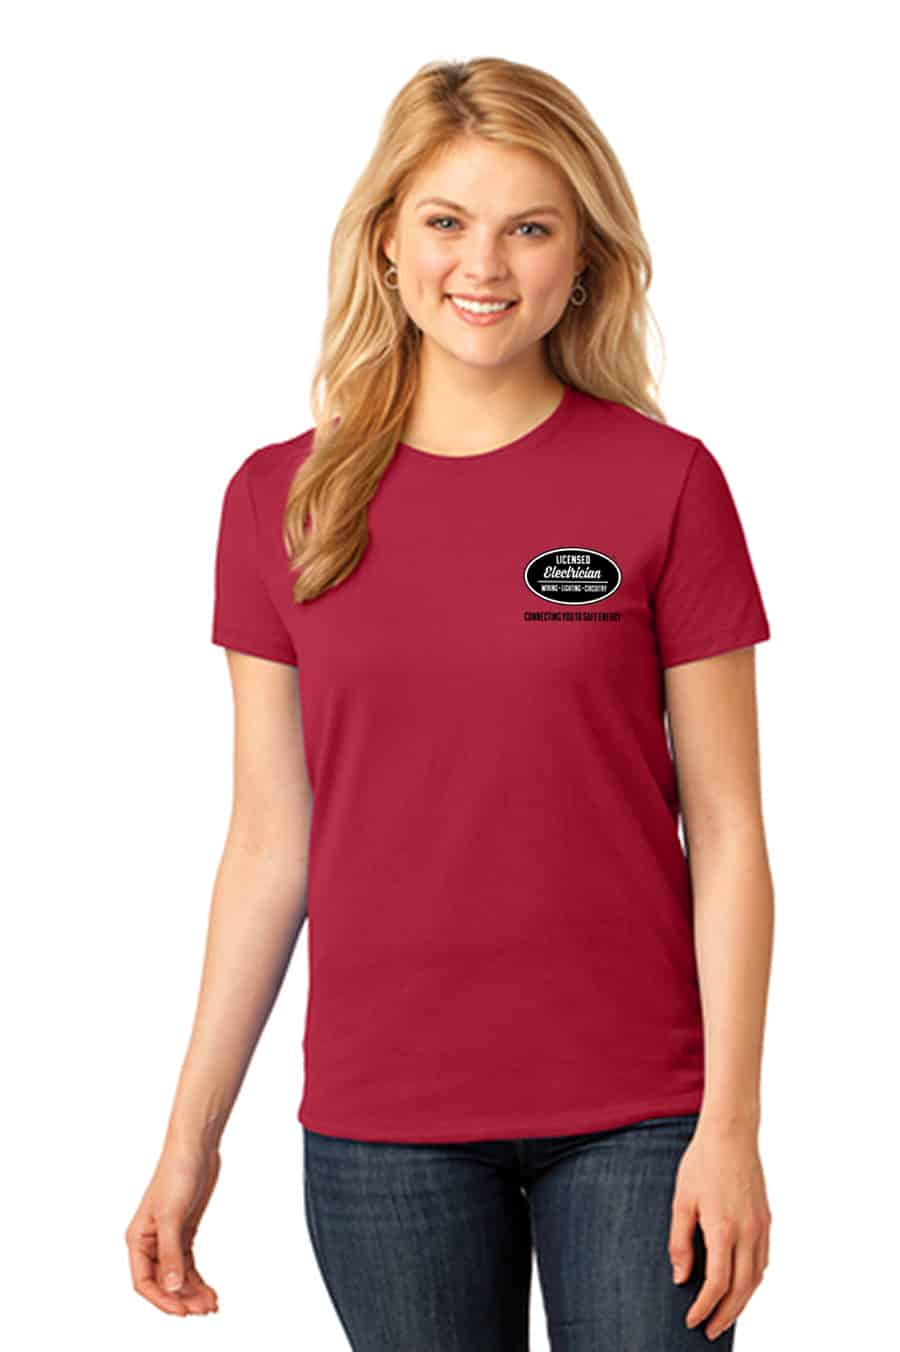 Women's Licensed Electrician T-Shirt